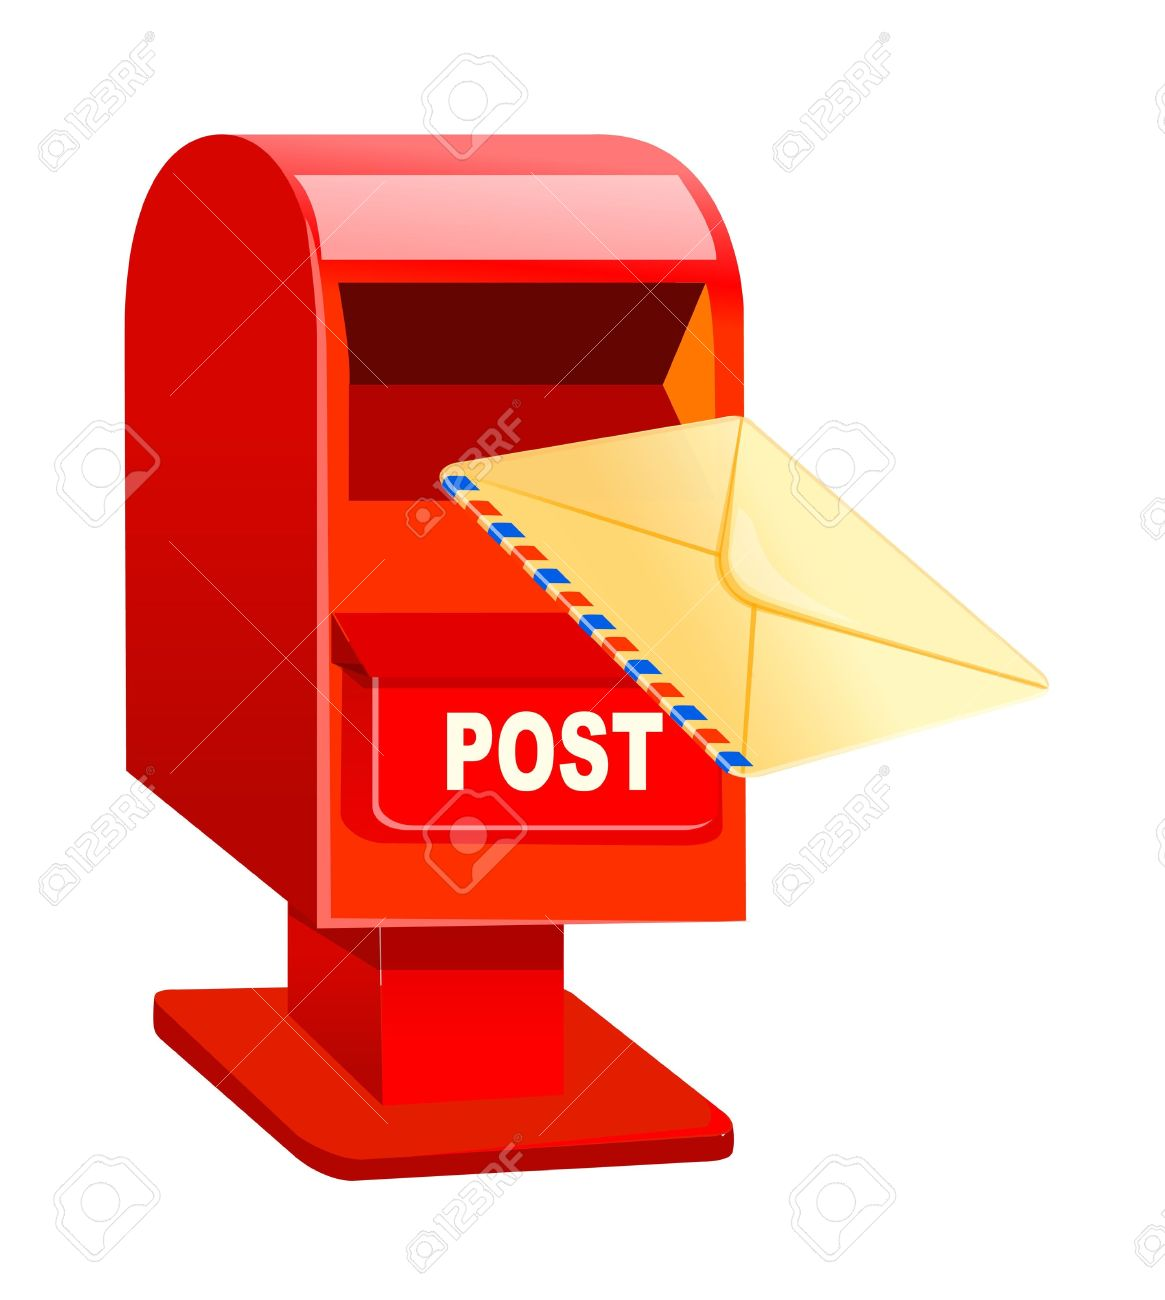 Free post box clipart.